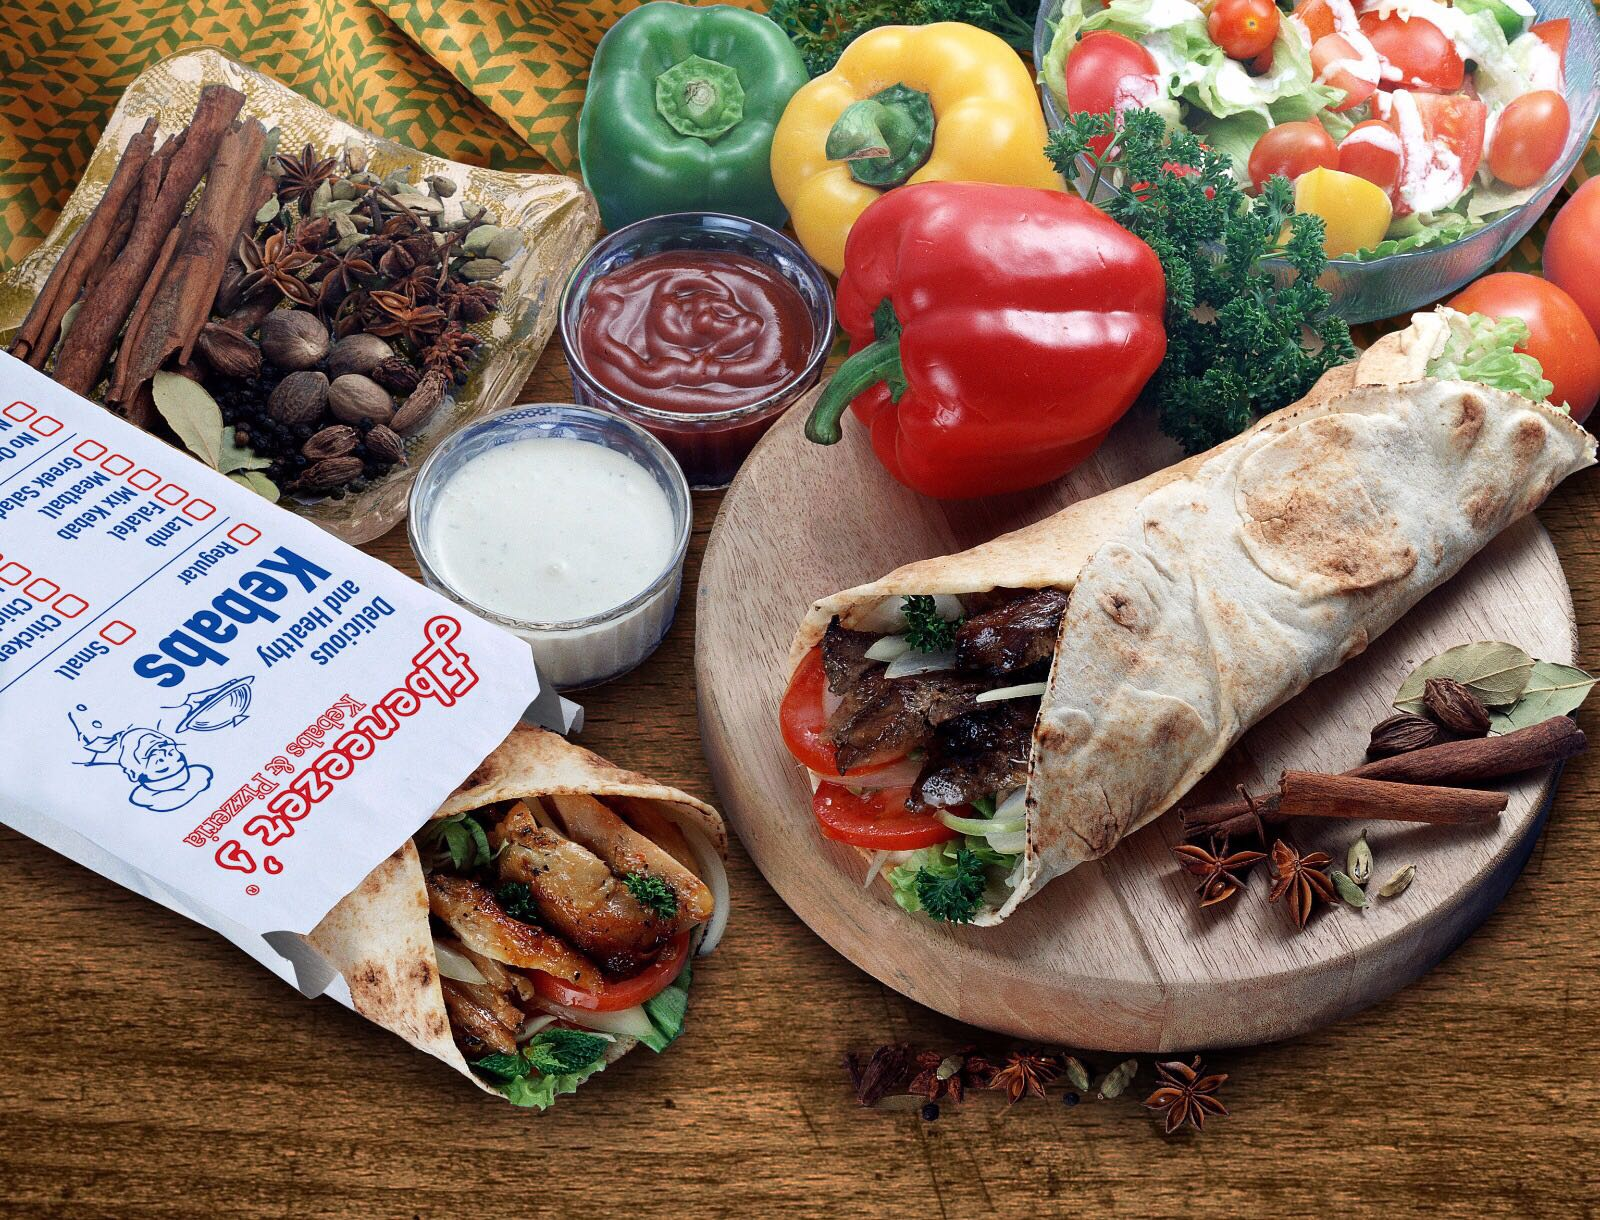 Ebeneezer's Kebabs & Pizzeria delivery from Soho - Order with Deliveroo